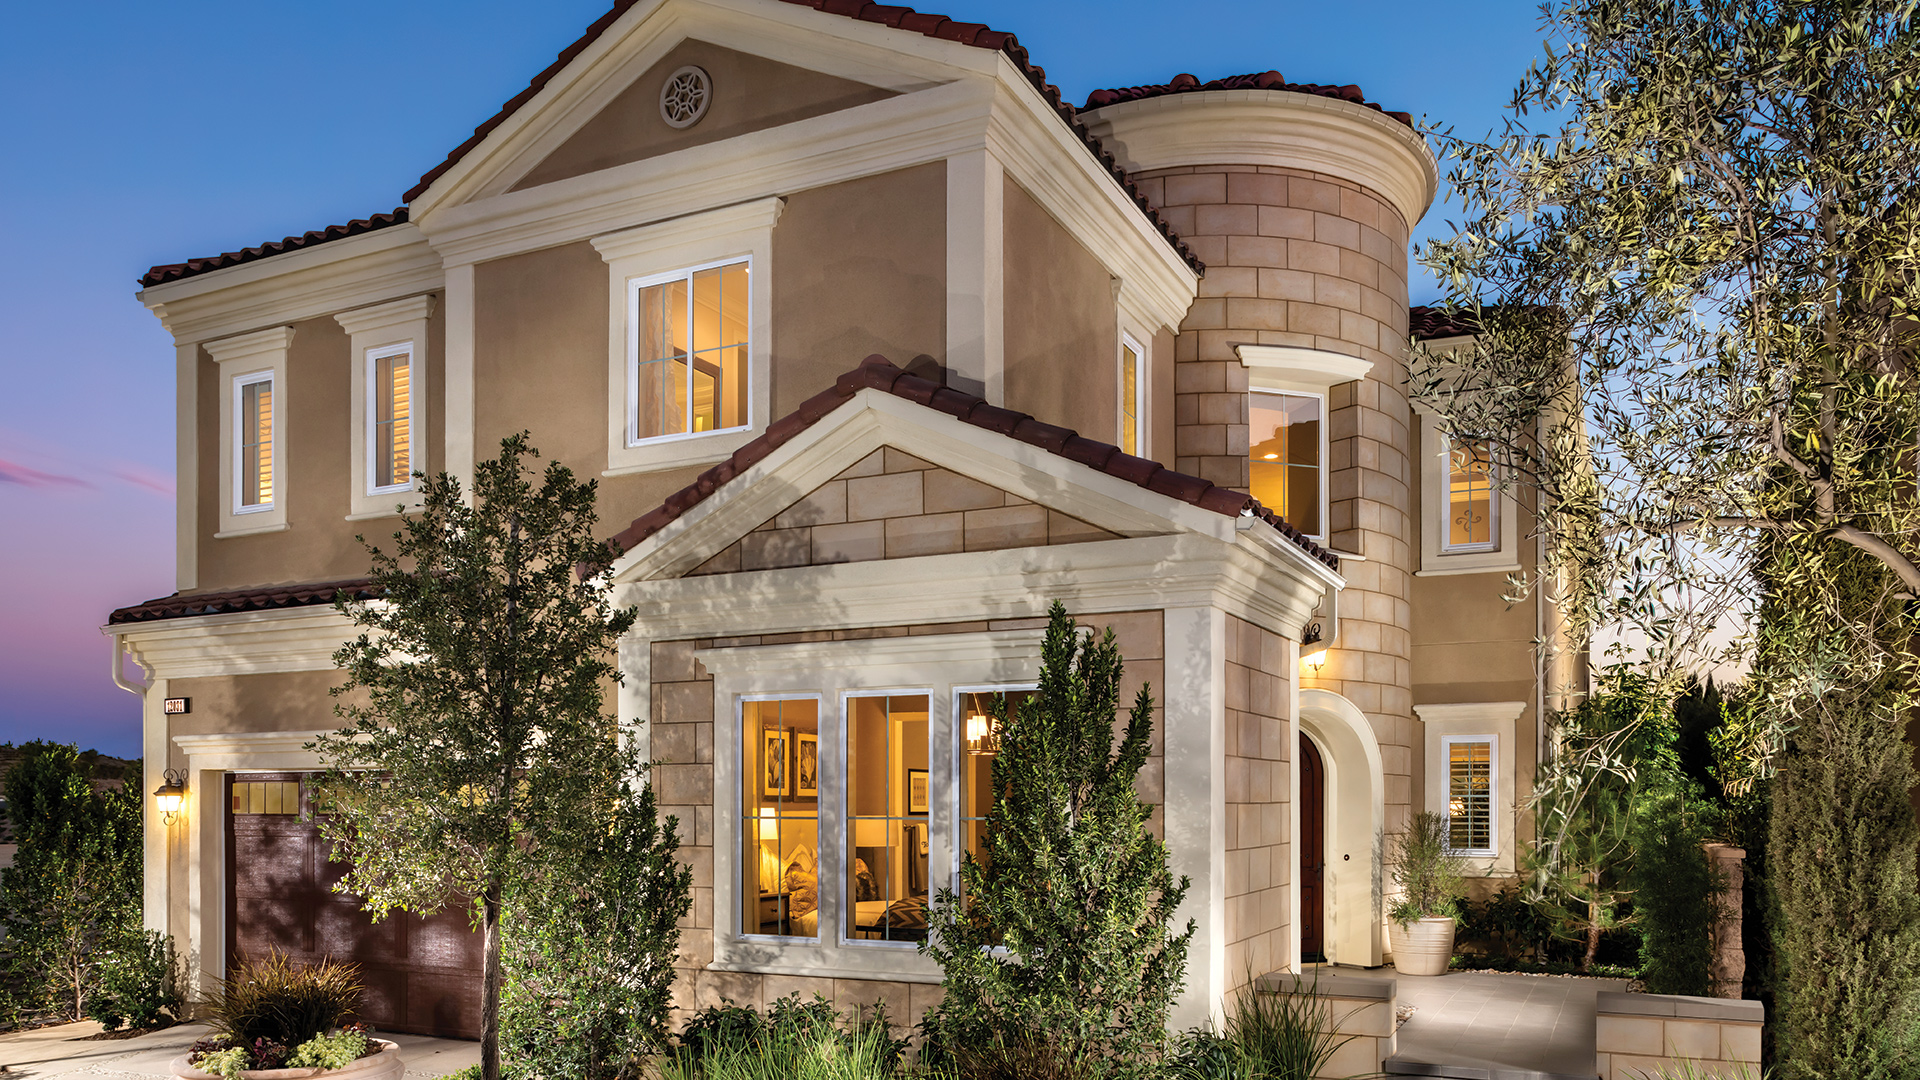 Beautiful elevations and Toll Brothers quality and craftsmanship.